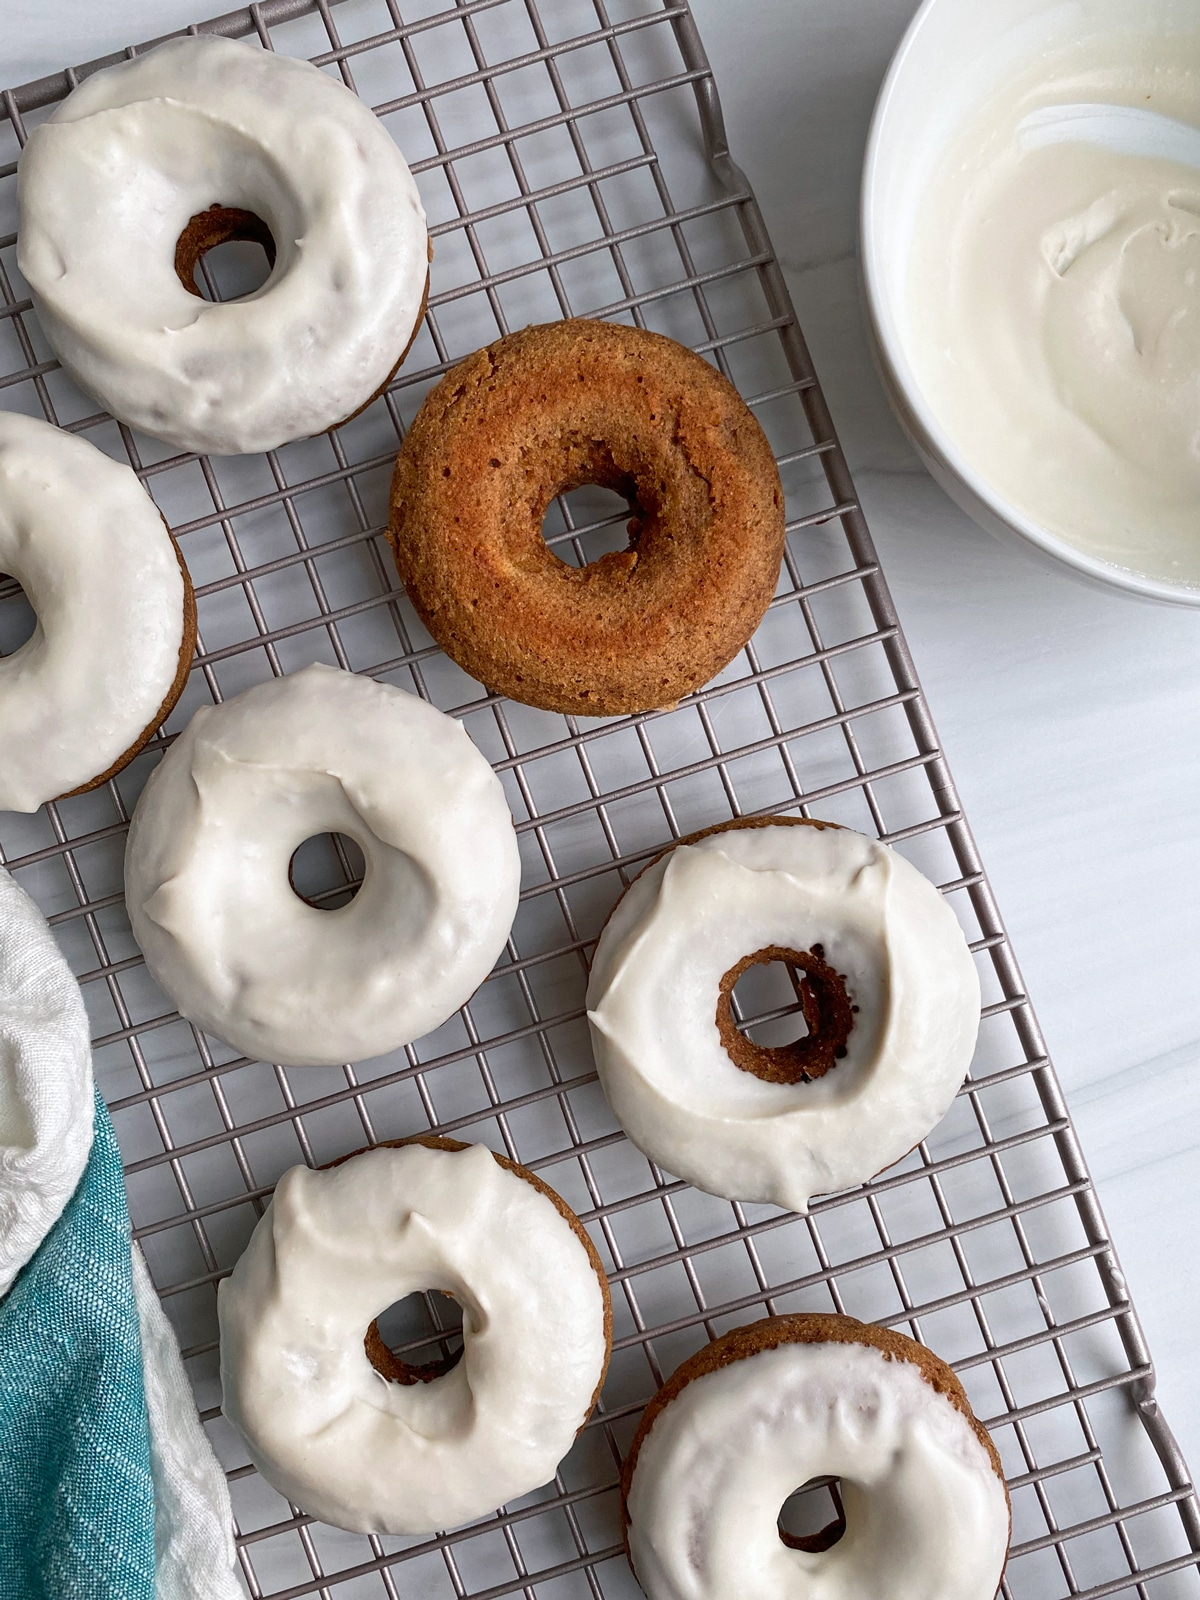 icing-the-banana-donuts